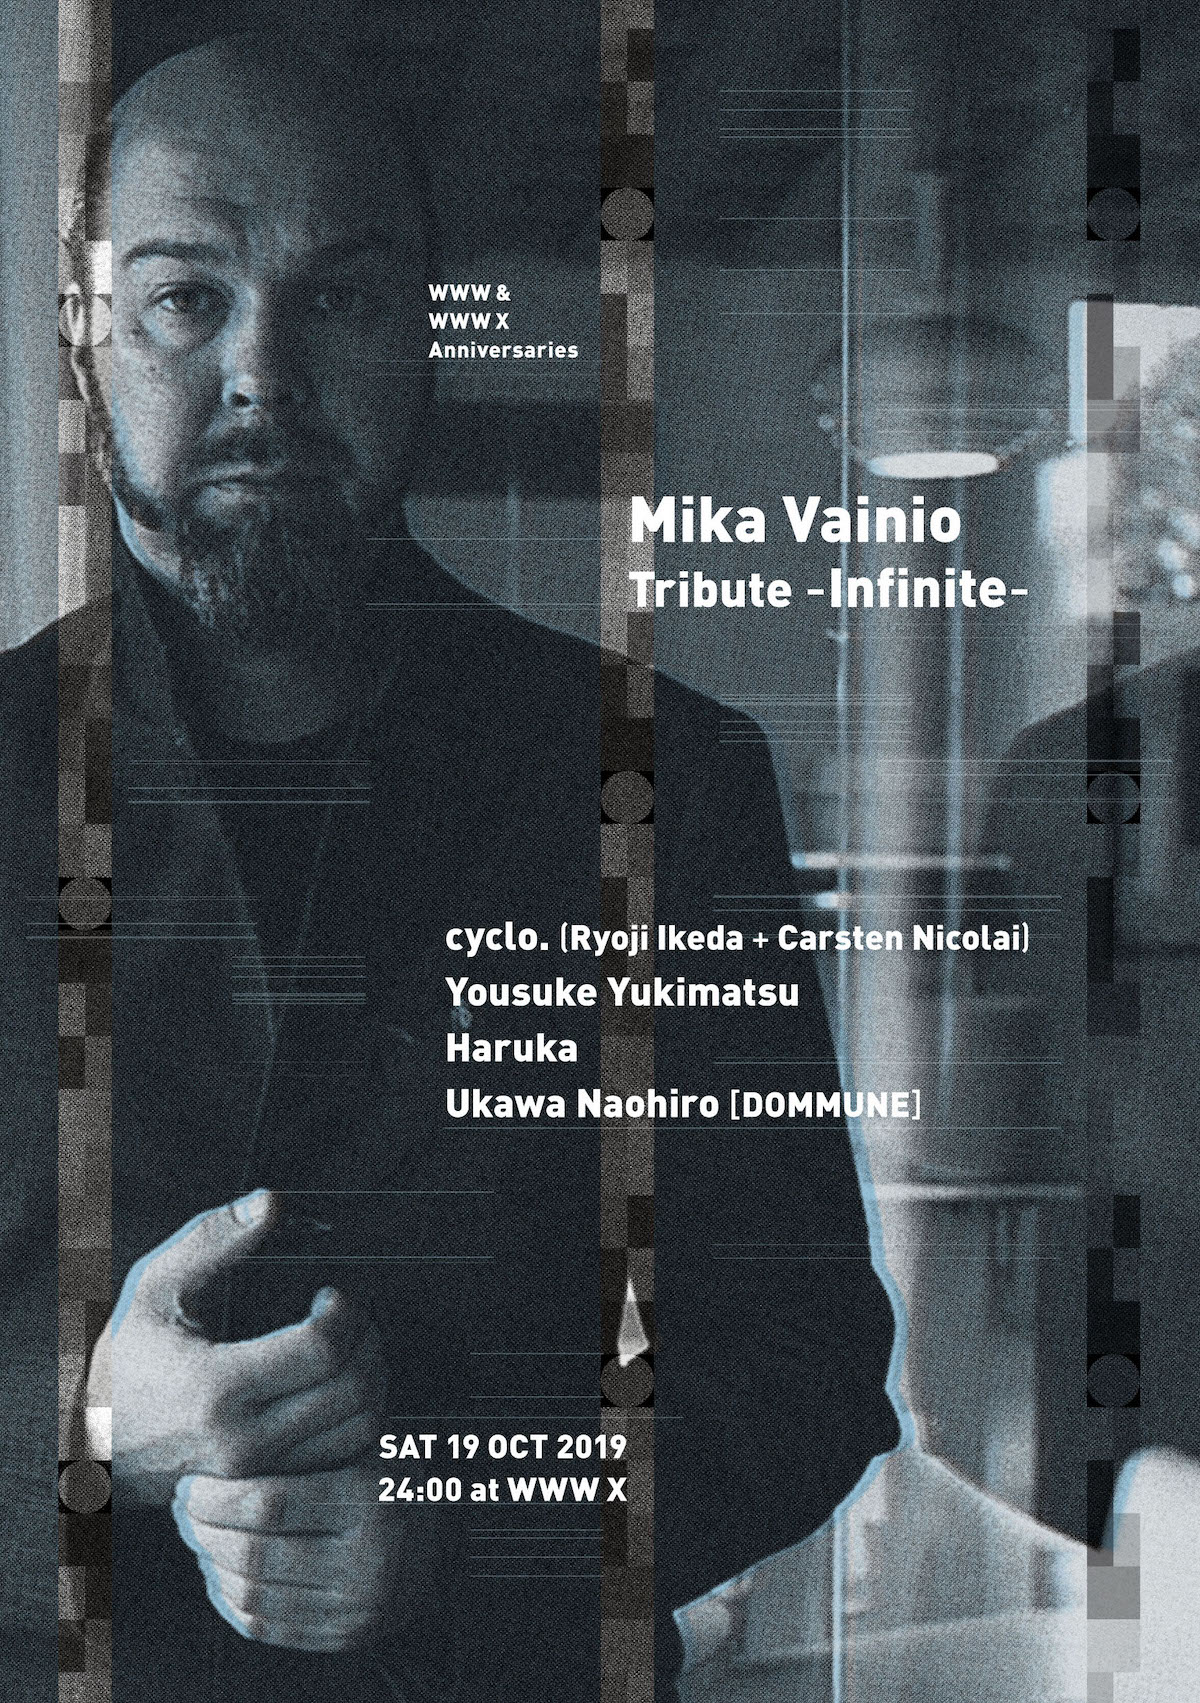 10.19 Mika Vainio Tribute - Infinite - at WWW X